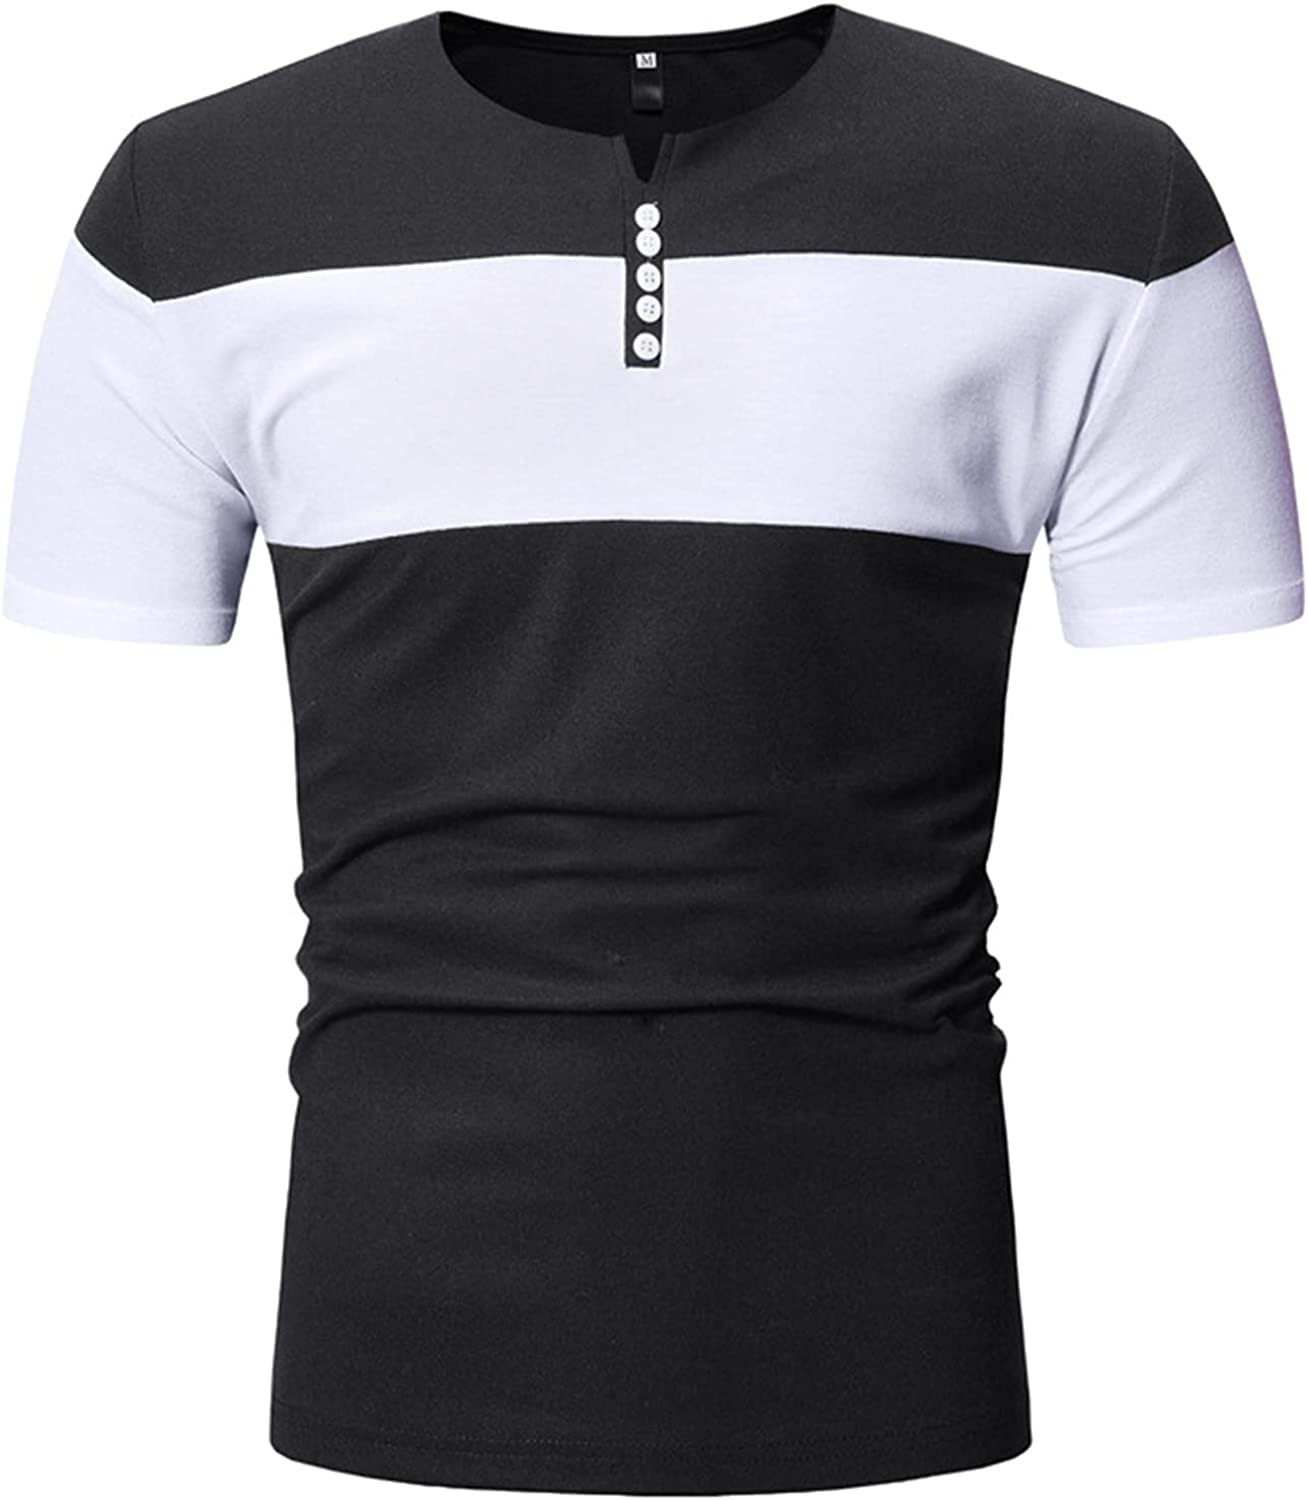 Mens Short Sleeve T-Shirts Contrast Color Stitching Slim Fit Tees Casual Tops